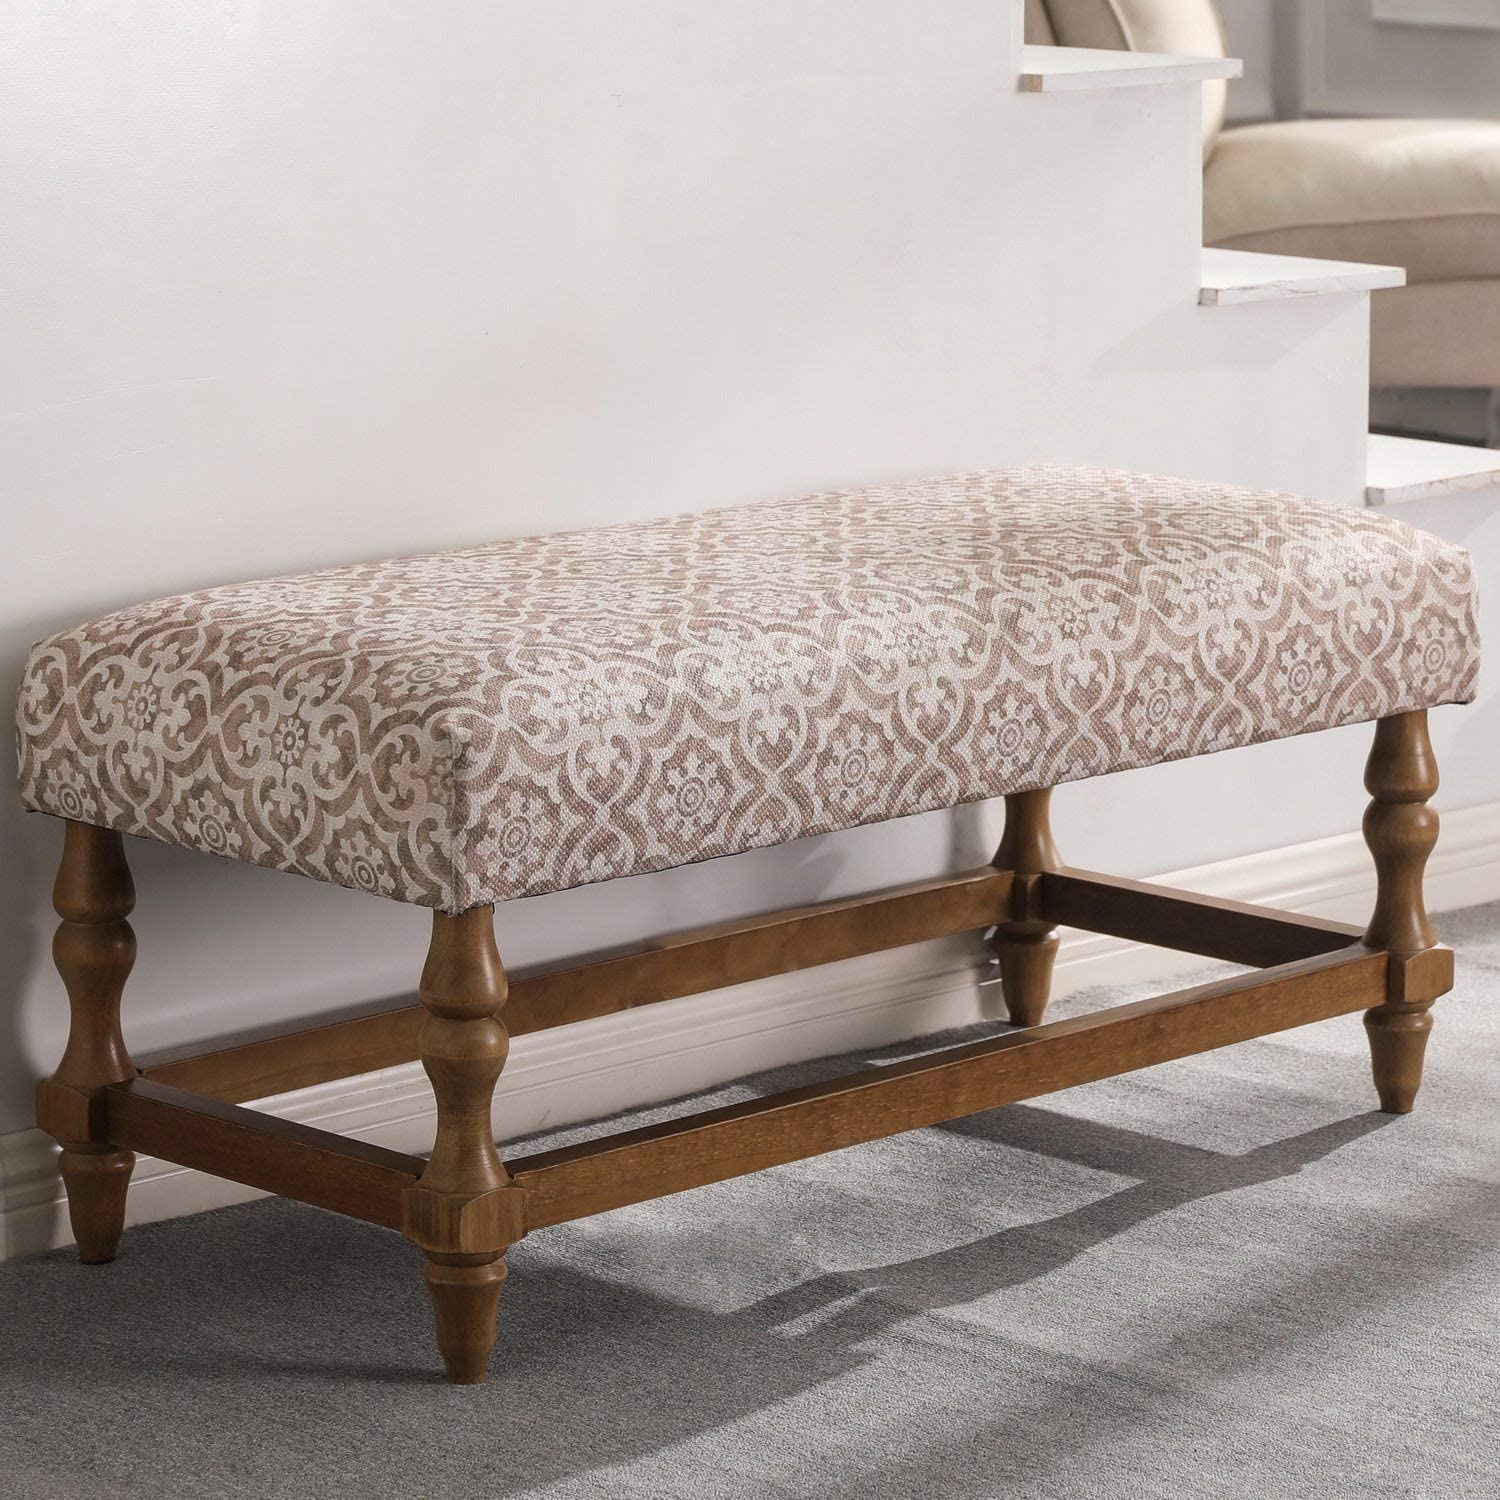 Farmhouse Upholstered Entryway Bench with Wood Legs, Printed Rustic Entry Bench, Dining Bench for Entryway, Bedroom, Mudroom, Living Room